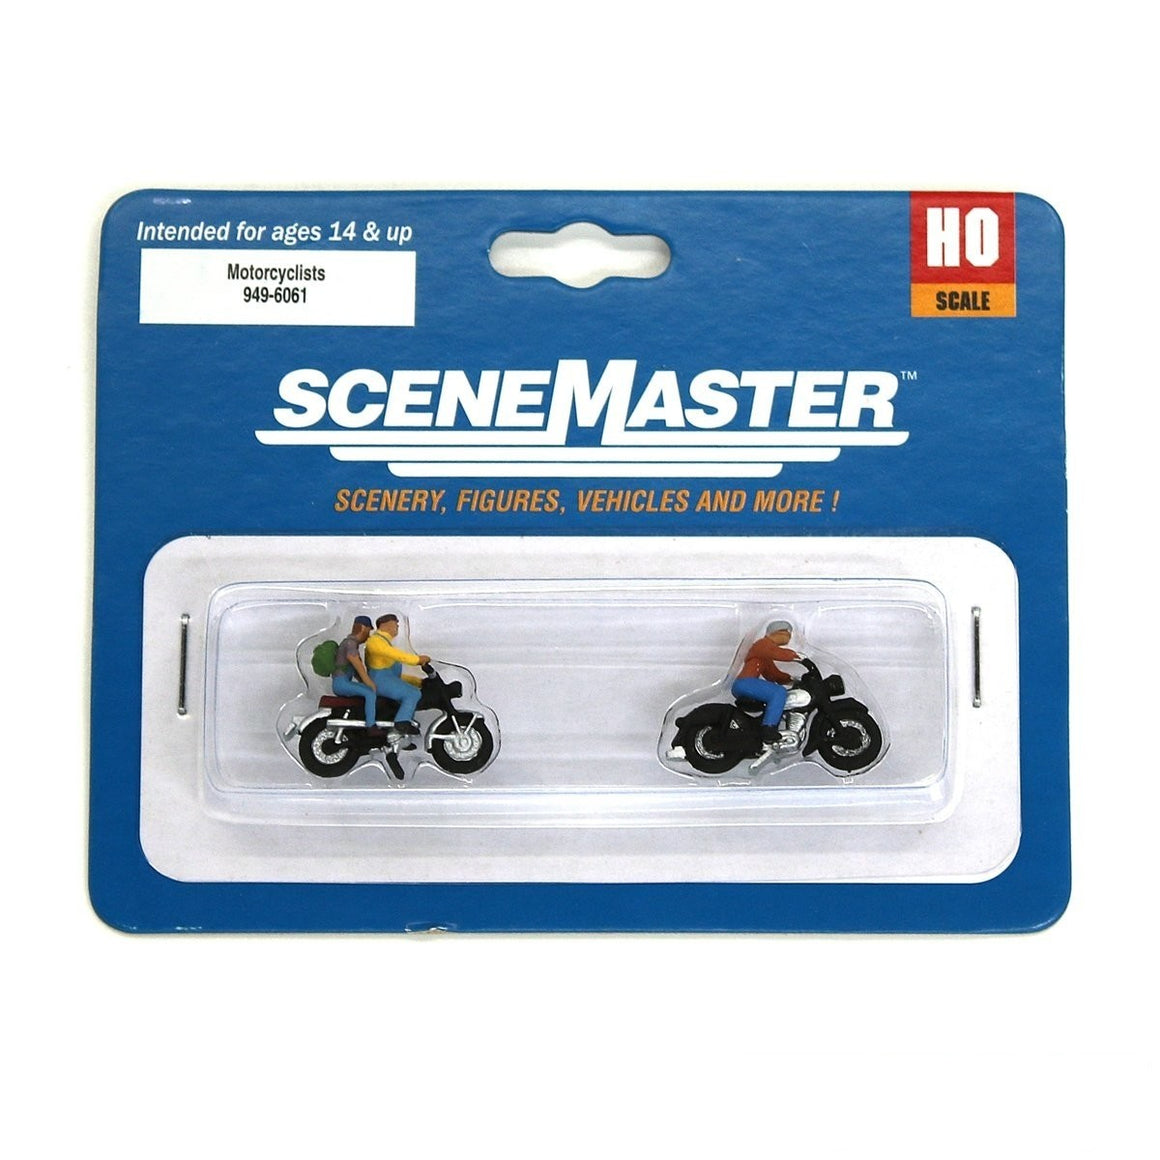 HO Scale: Motorcyclists